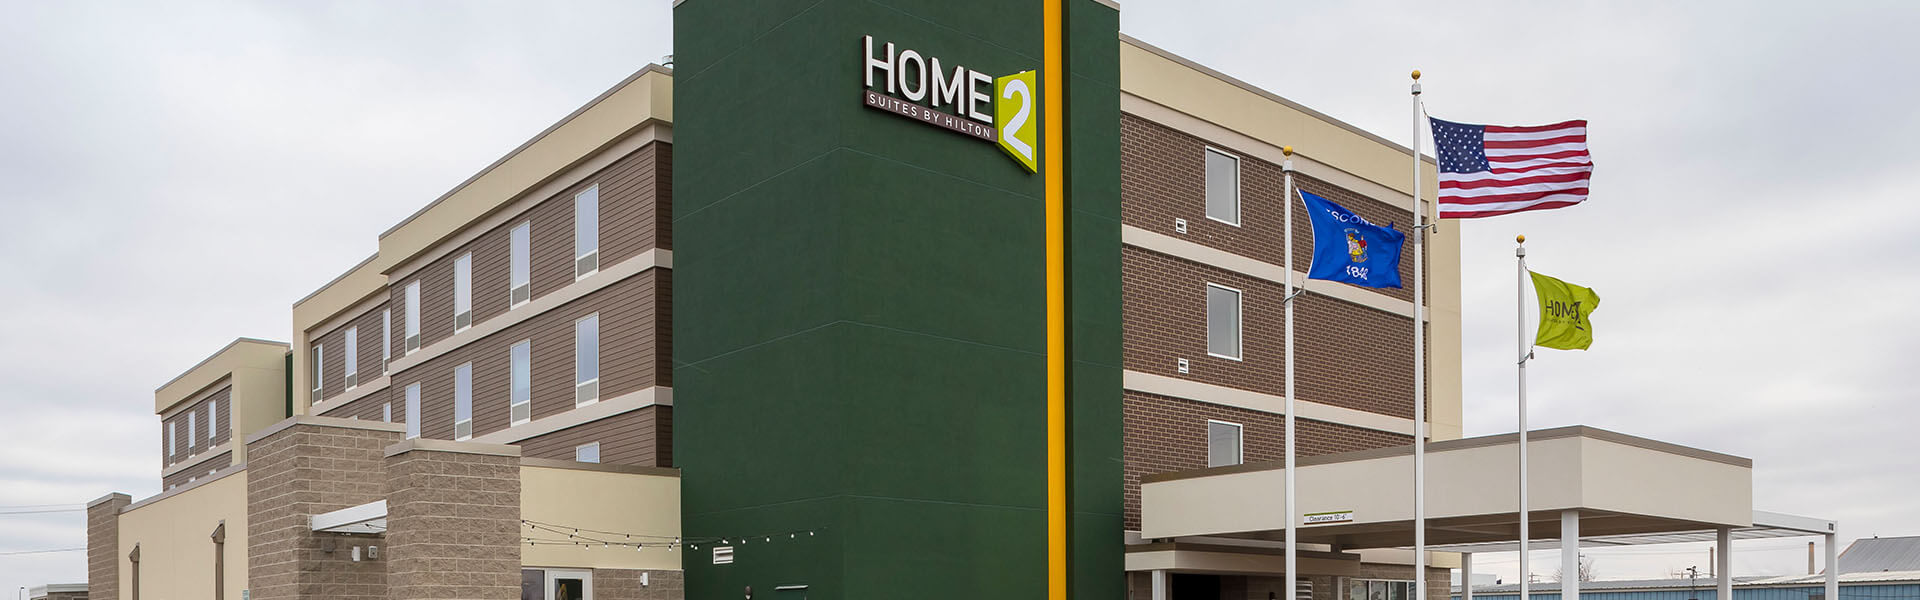 immel-banner_HIlton Home 2 Suites